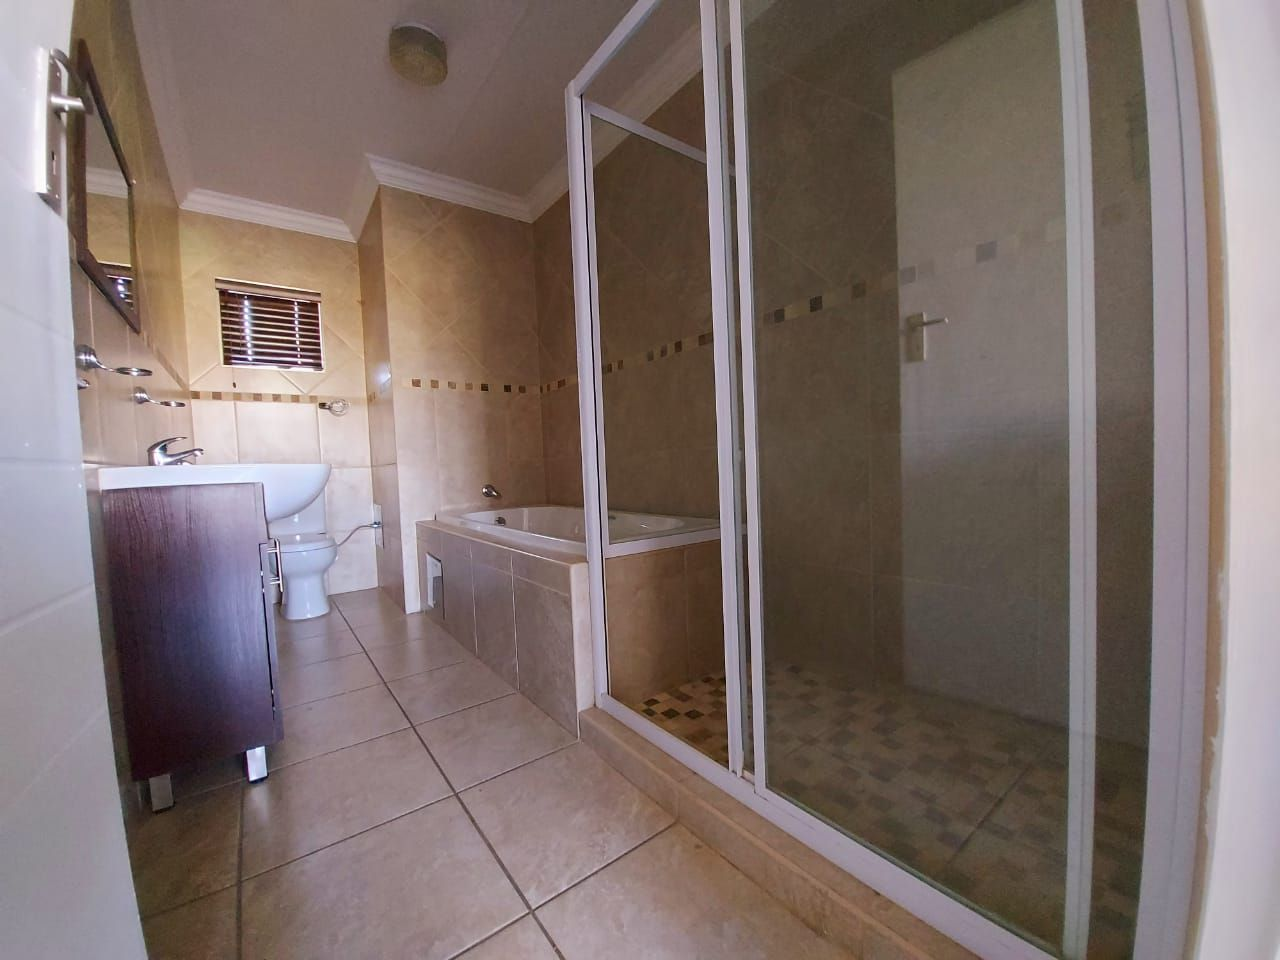 Apartment in Bult - WhatsApp Image 2020-08-17 at 13.25.38 (3).jpeg